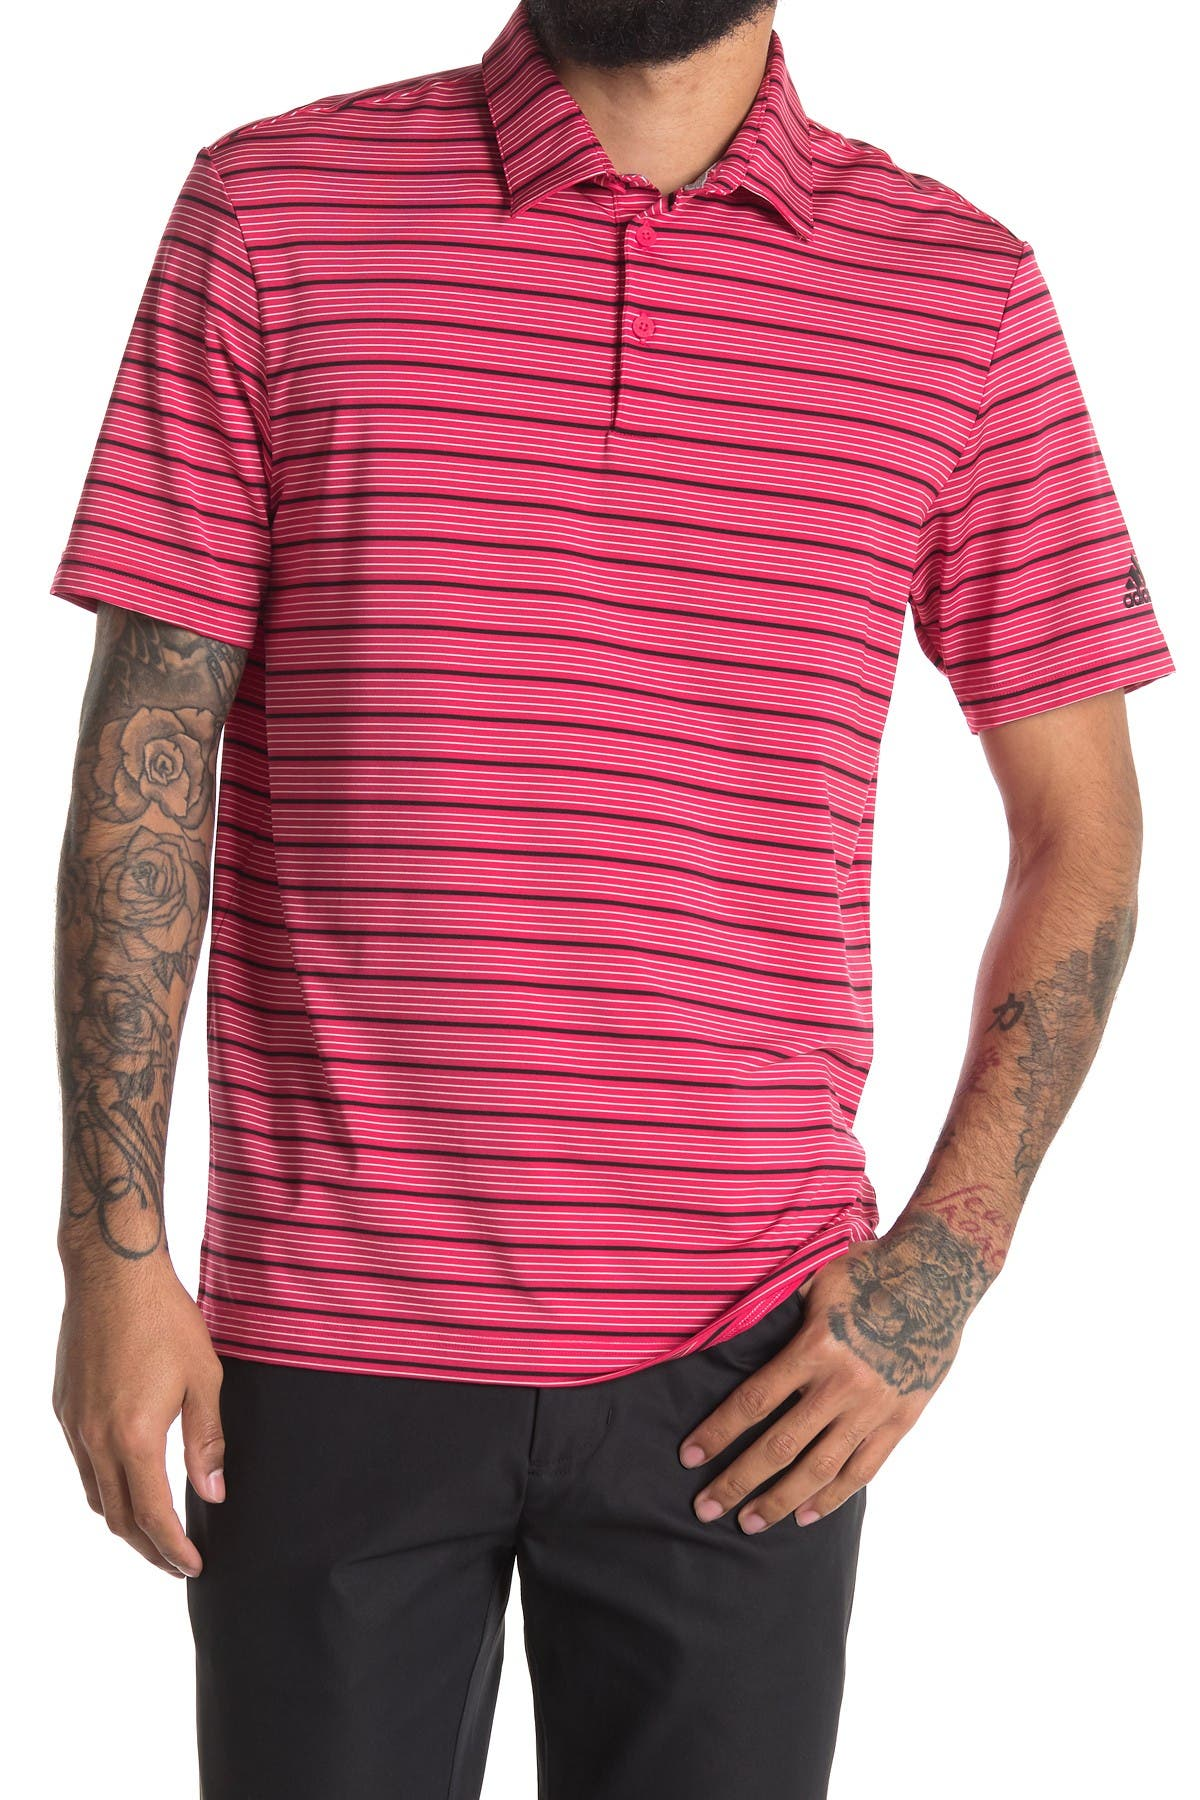 Image of Adidas Golf Ultimate365 Pencil Stripe Polo Shirt